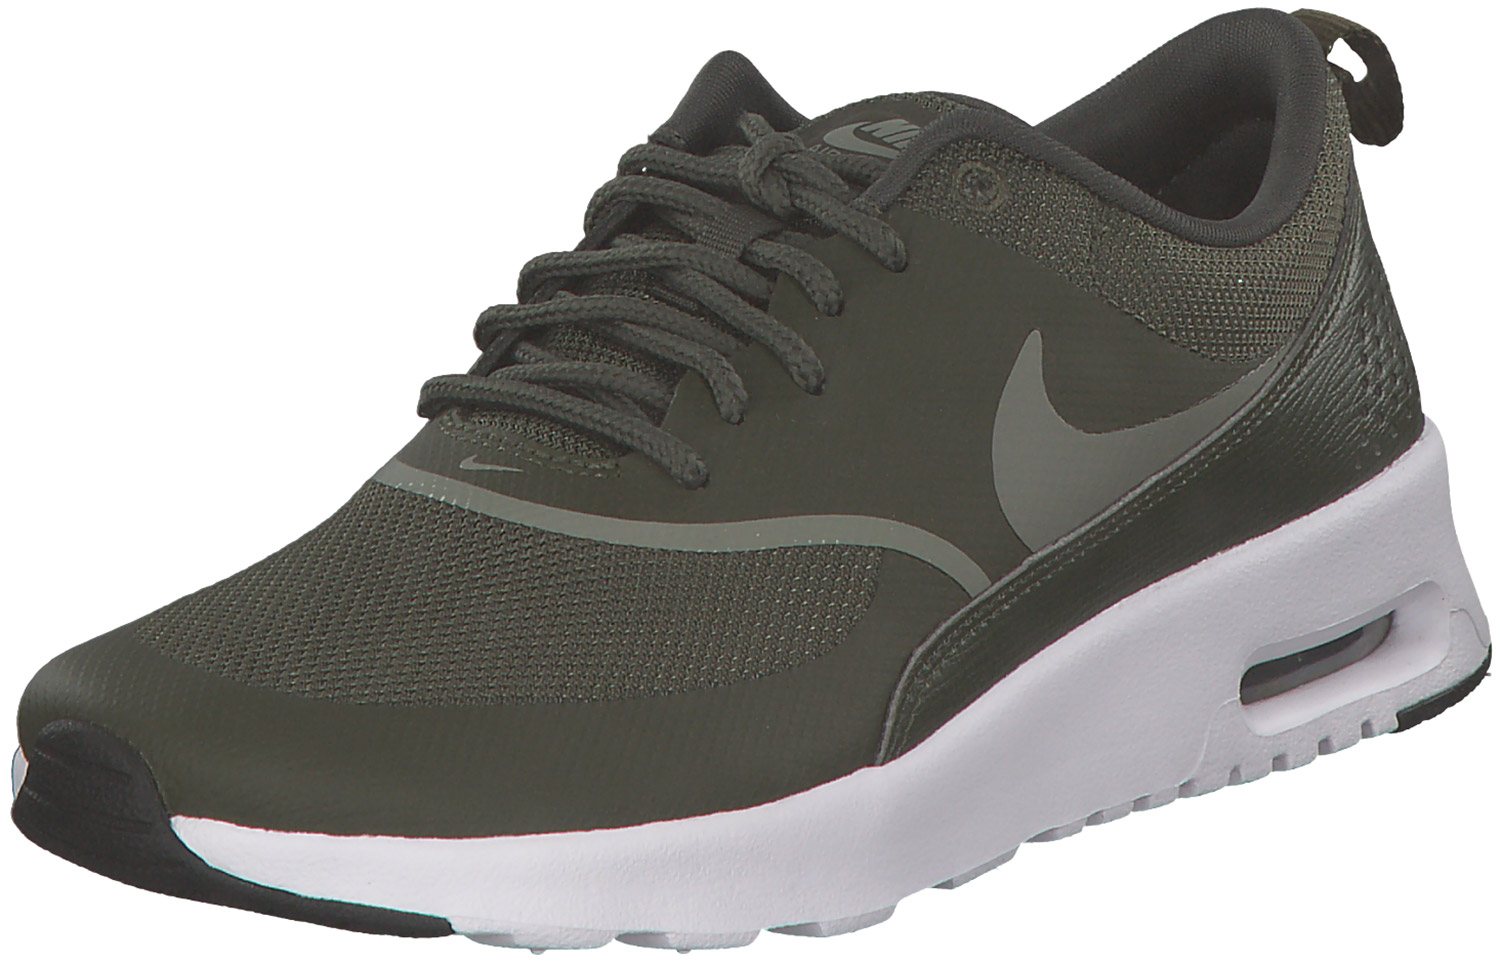 Details about NIKE AIR MAX THEA WOMEN'S SNEAKERS SPORT SHOES TRAINERS  599409310 Green Khaki